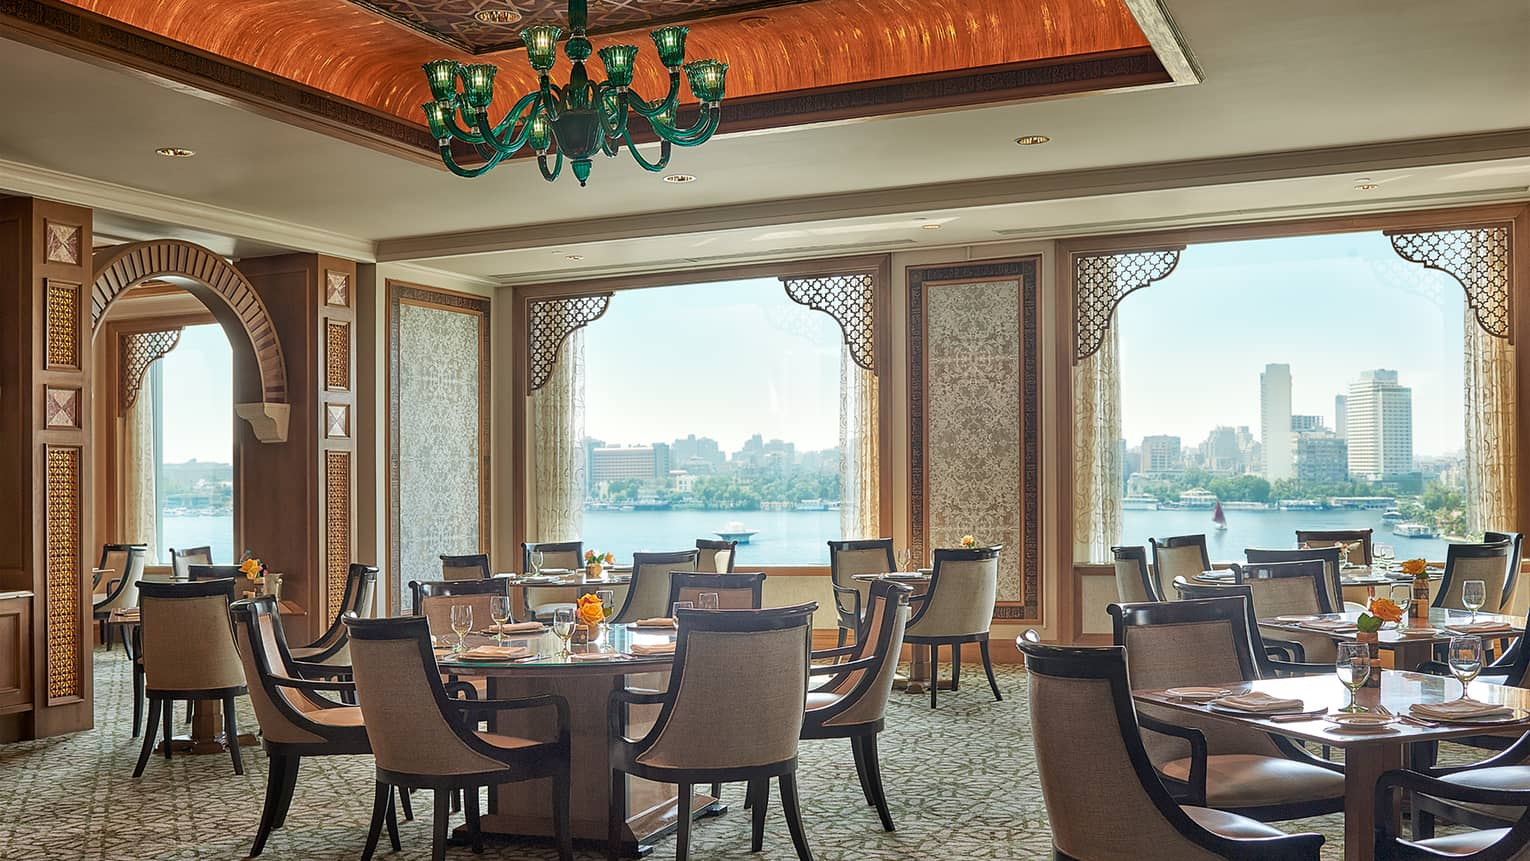 Zitouni Egyptian restaurant dining room tables with high ceilings and windows looking out at Nile river during day